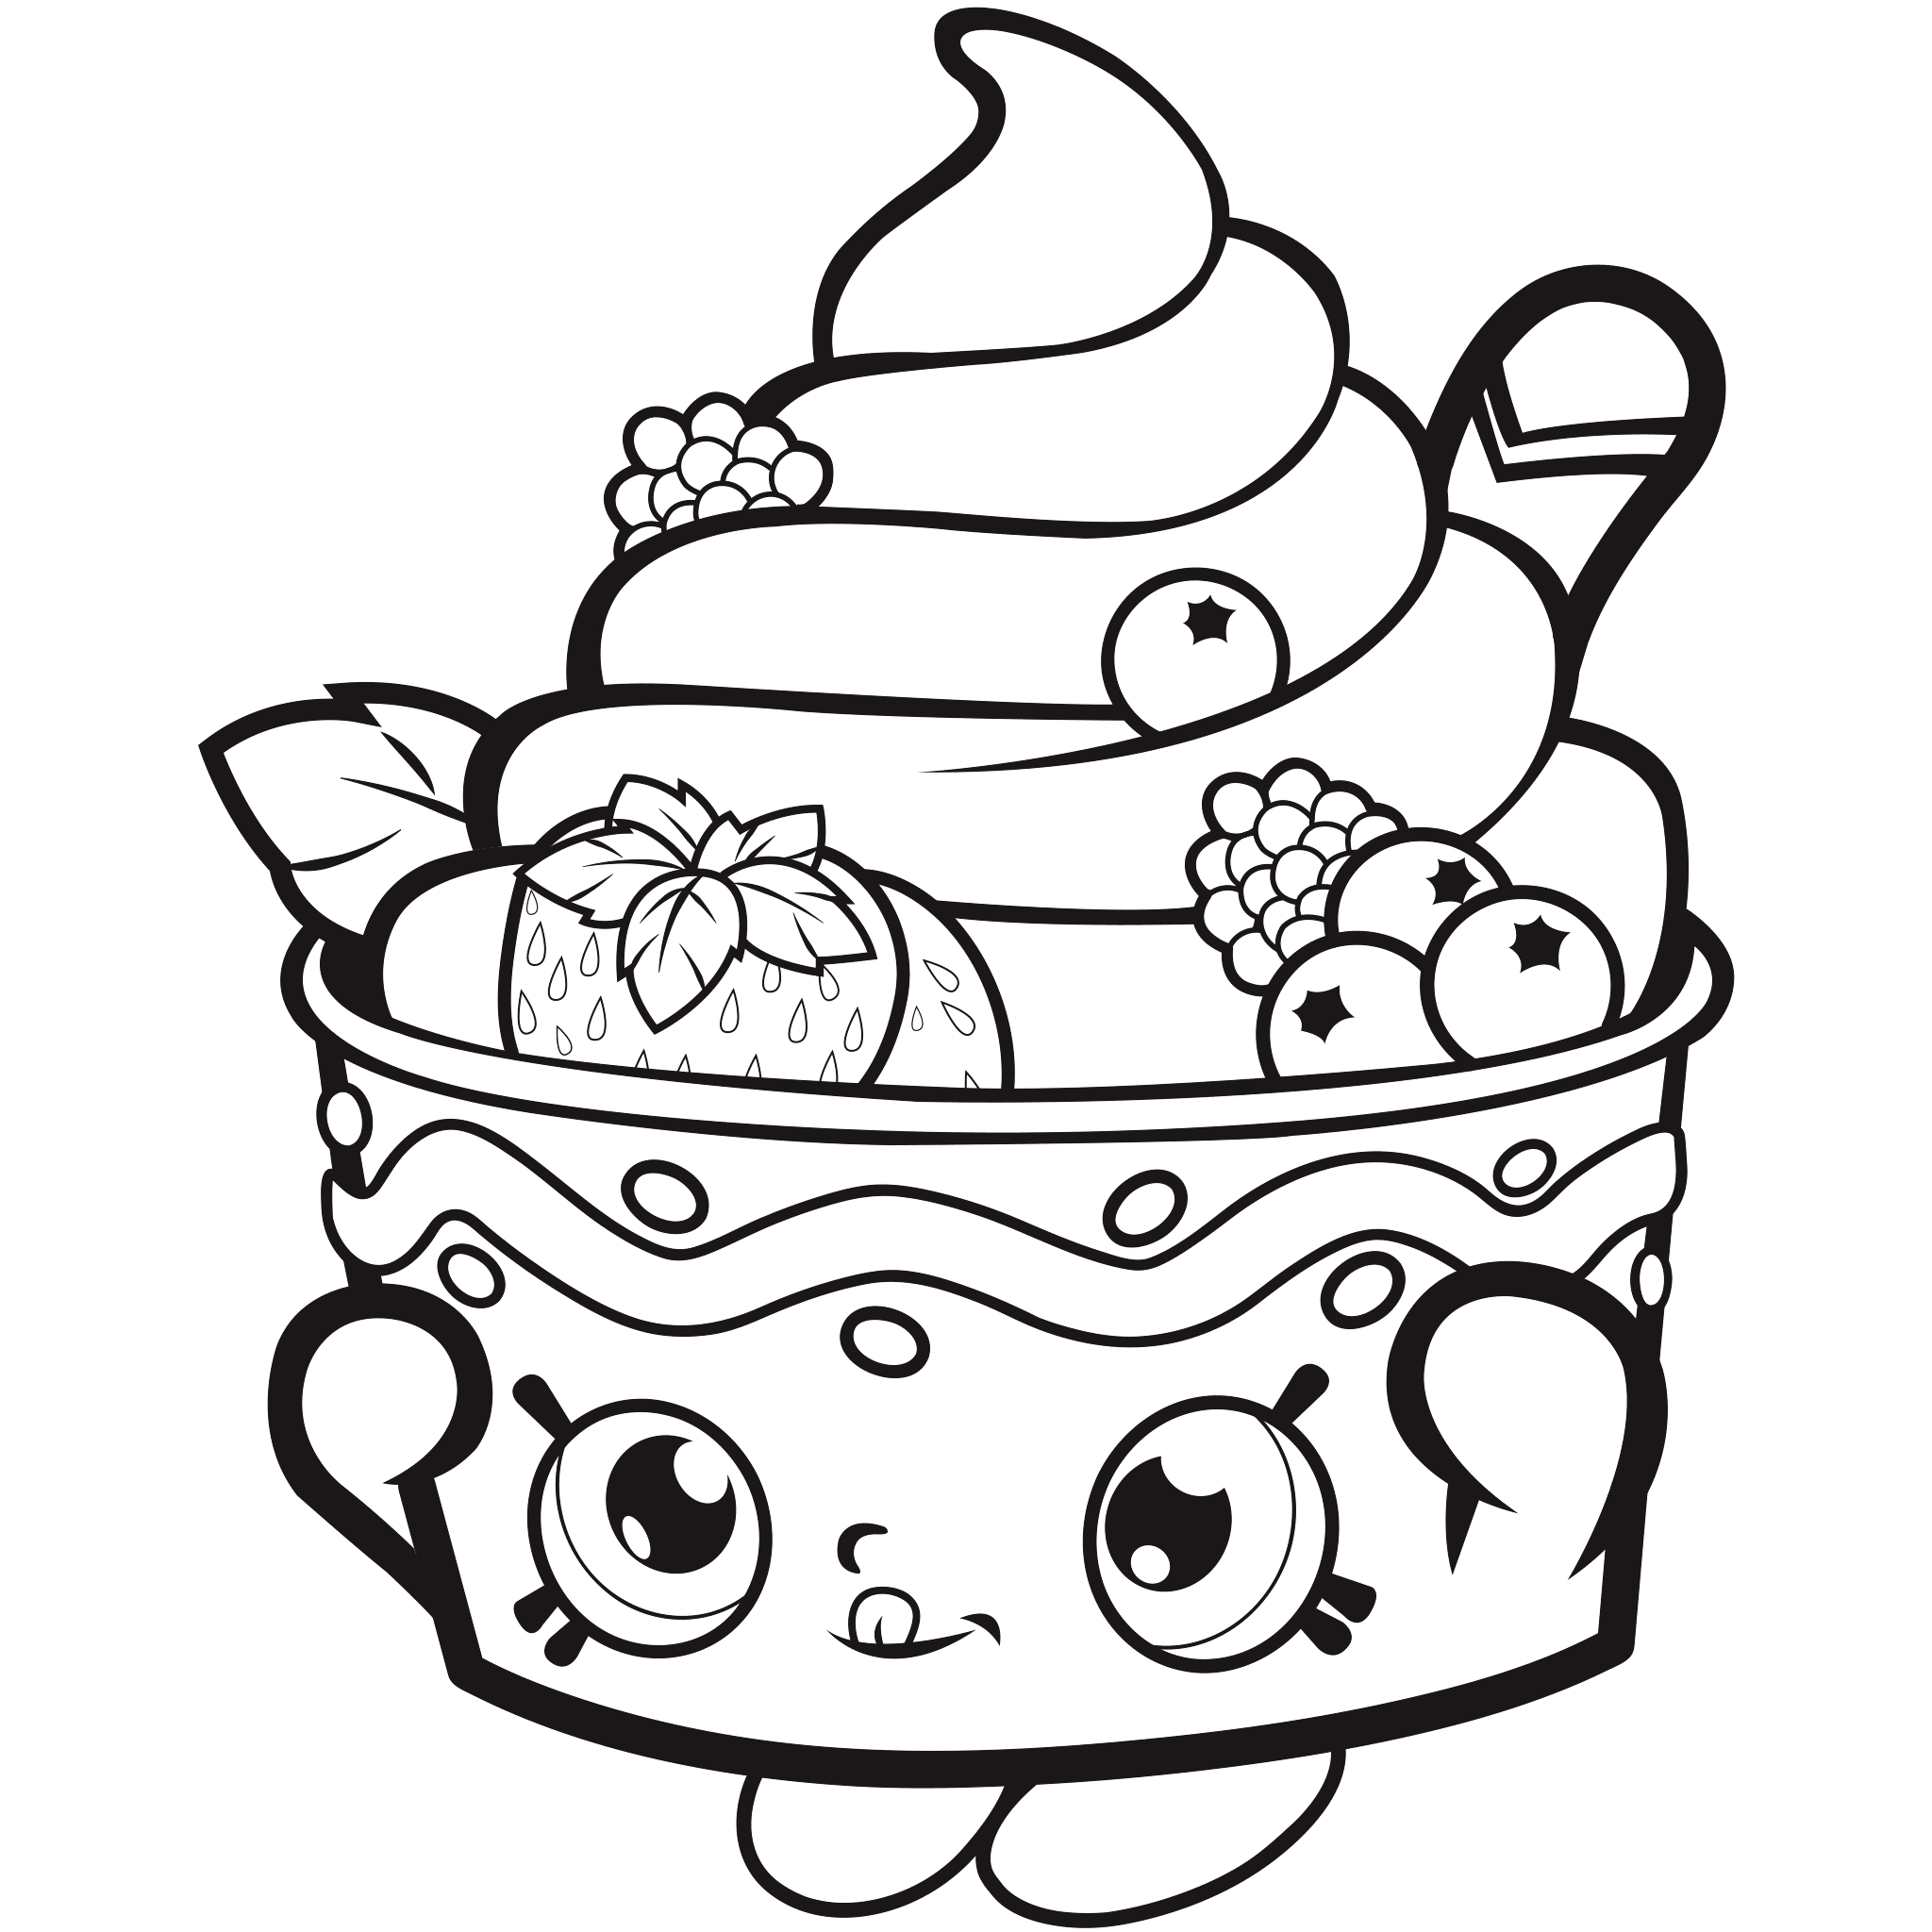 free shopkins coloring pages - shopkins coloring pages